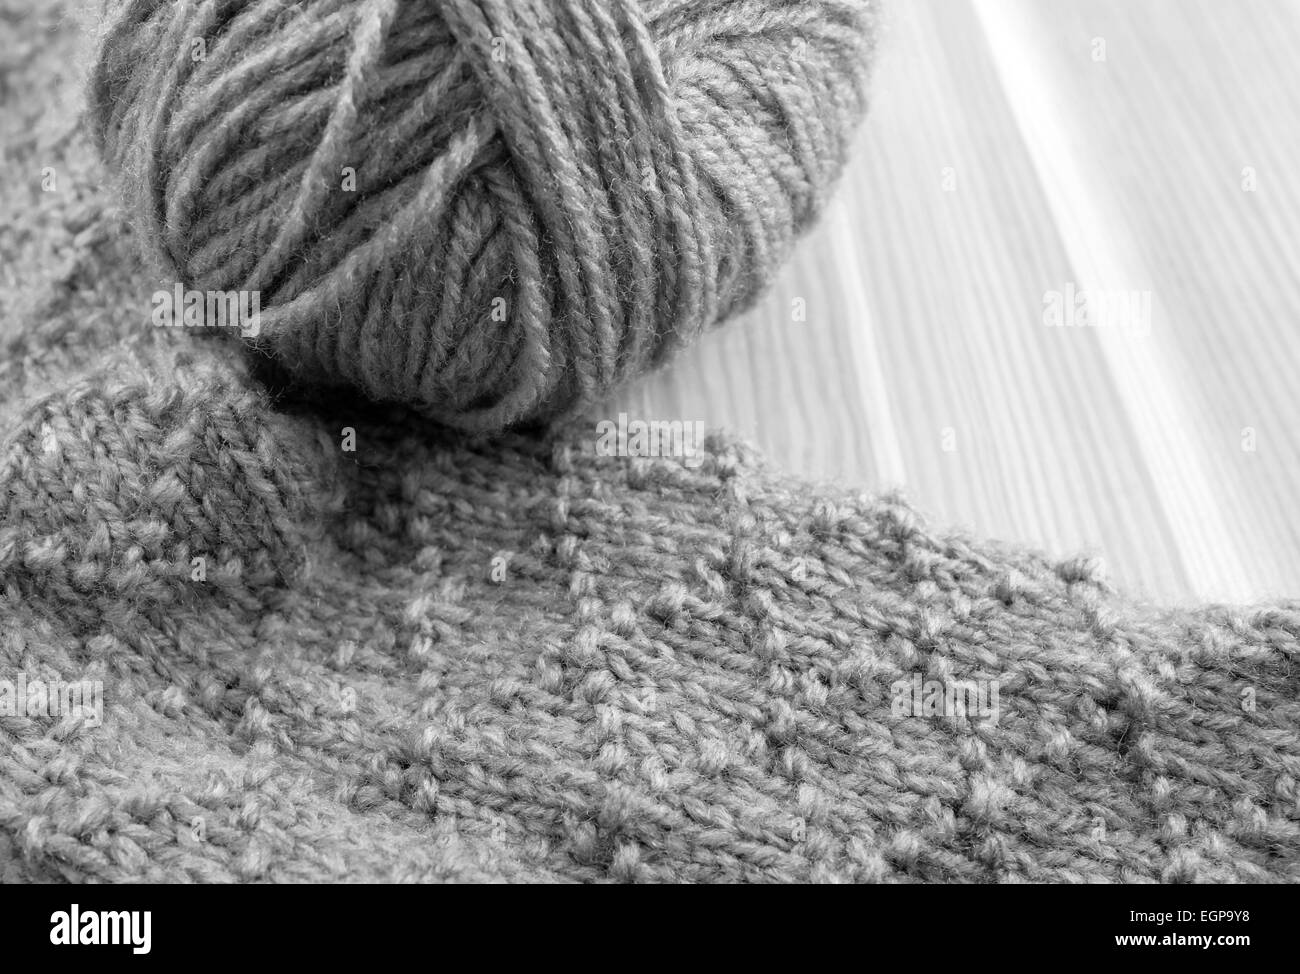 Patterned knitting with ball of wool, on wooden table - monochrome processing - Stock Image